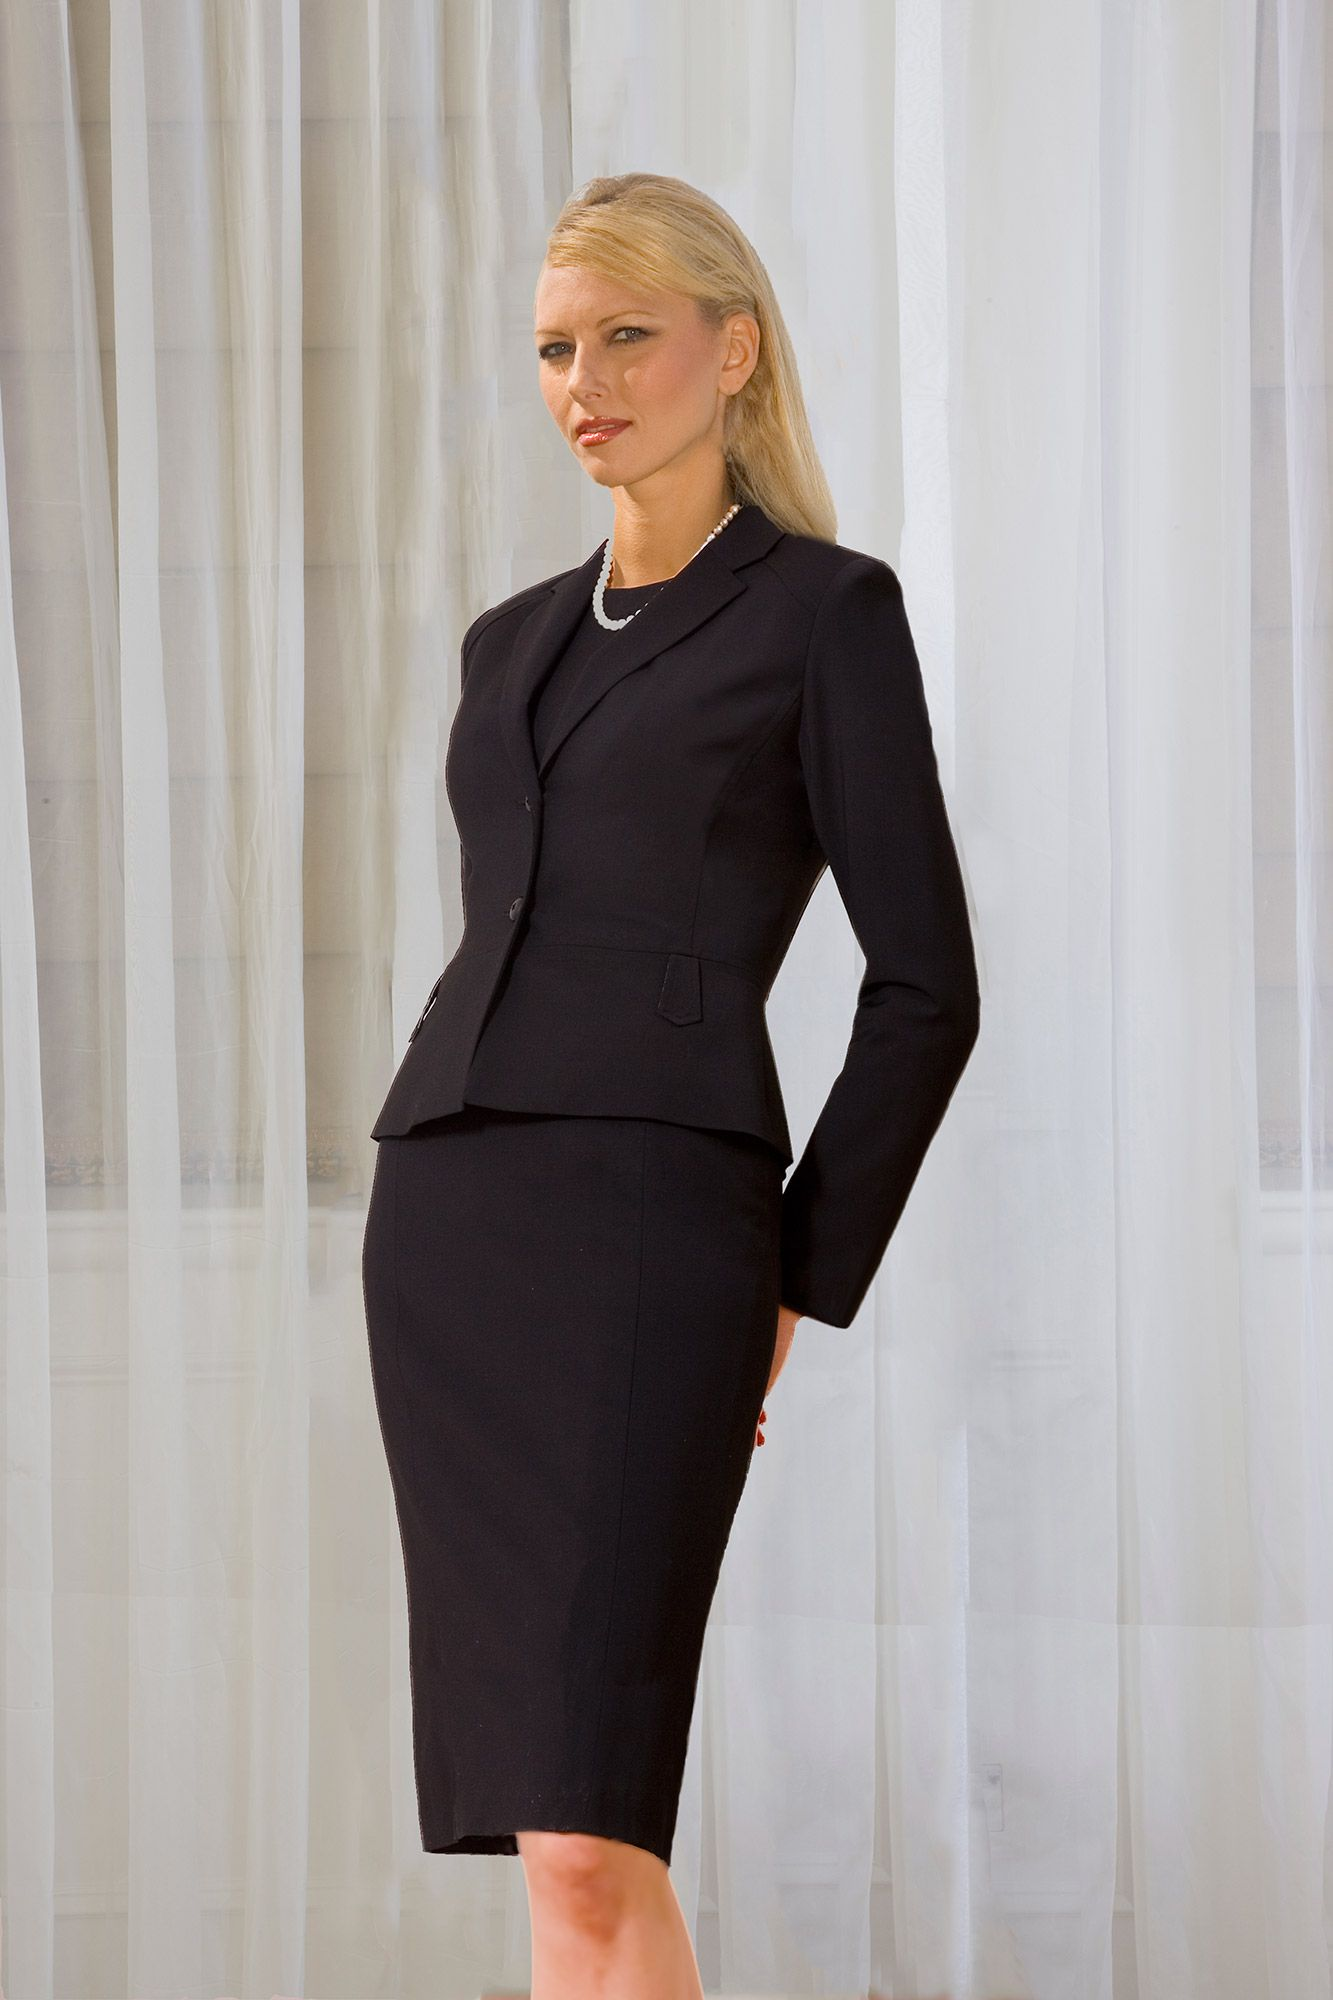 All Black Black Suit Black Top Always Works If You Re Only Buying One Suit Try To Go Bla Womens Suits Business Suits For Women High Fashion Street Style [ 2000 x 1333 Pixel ]